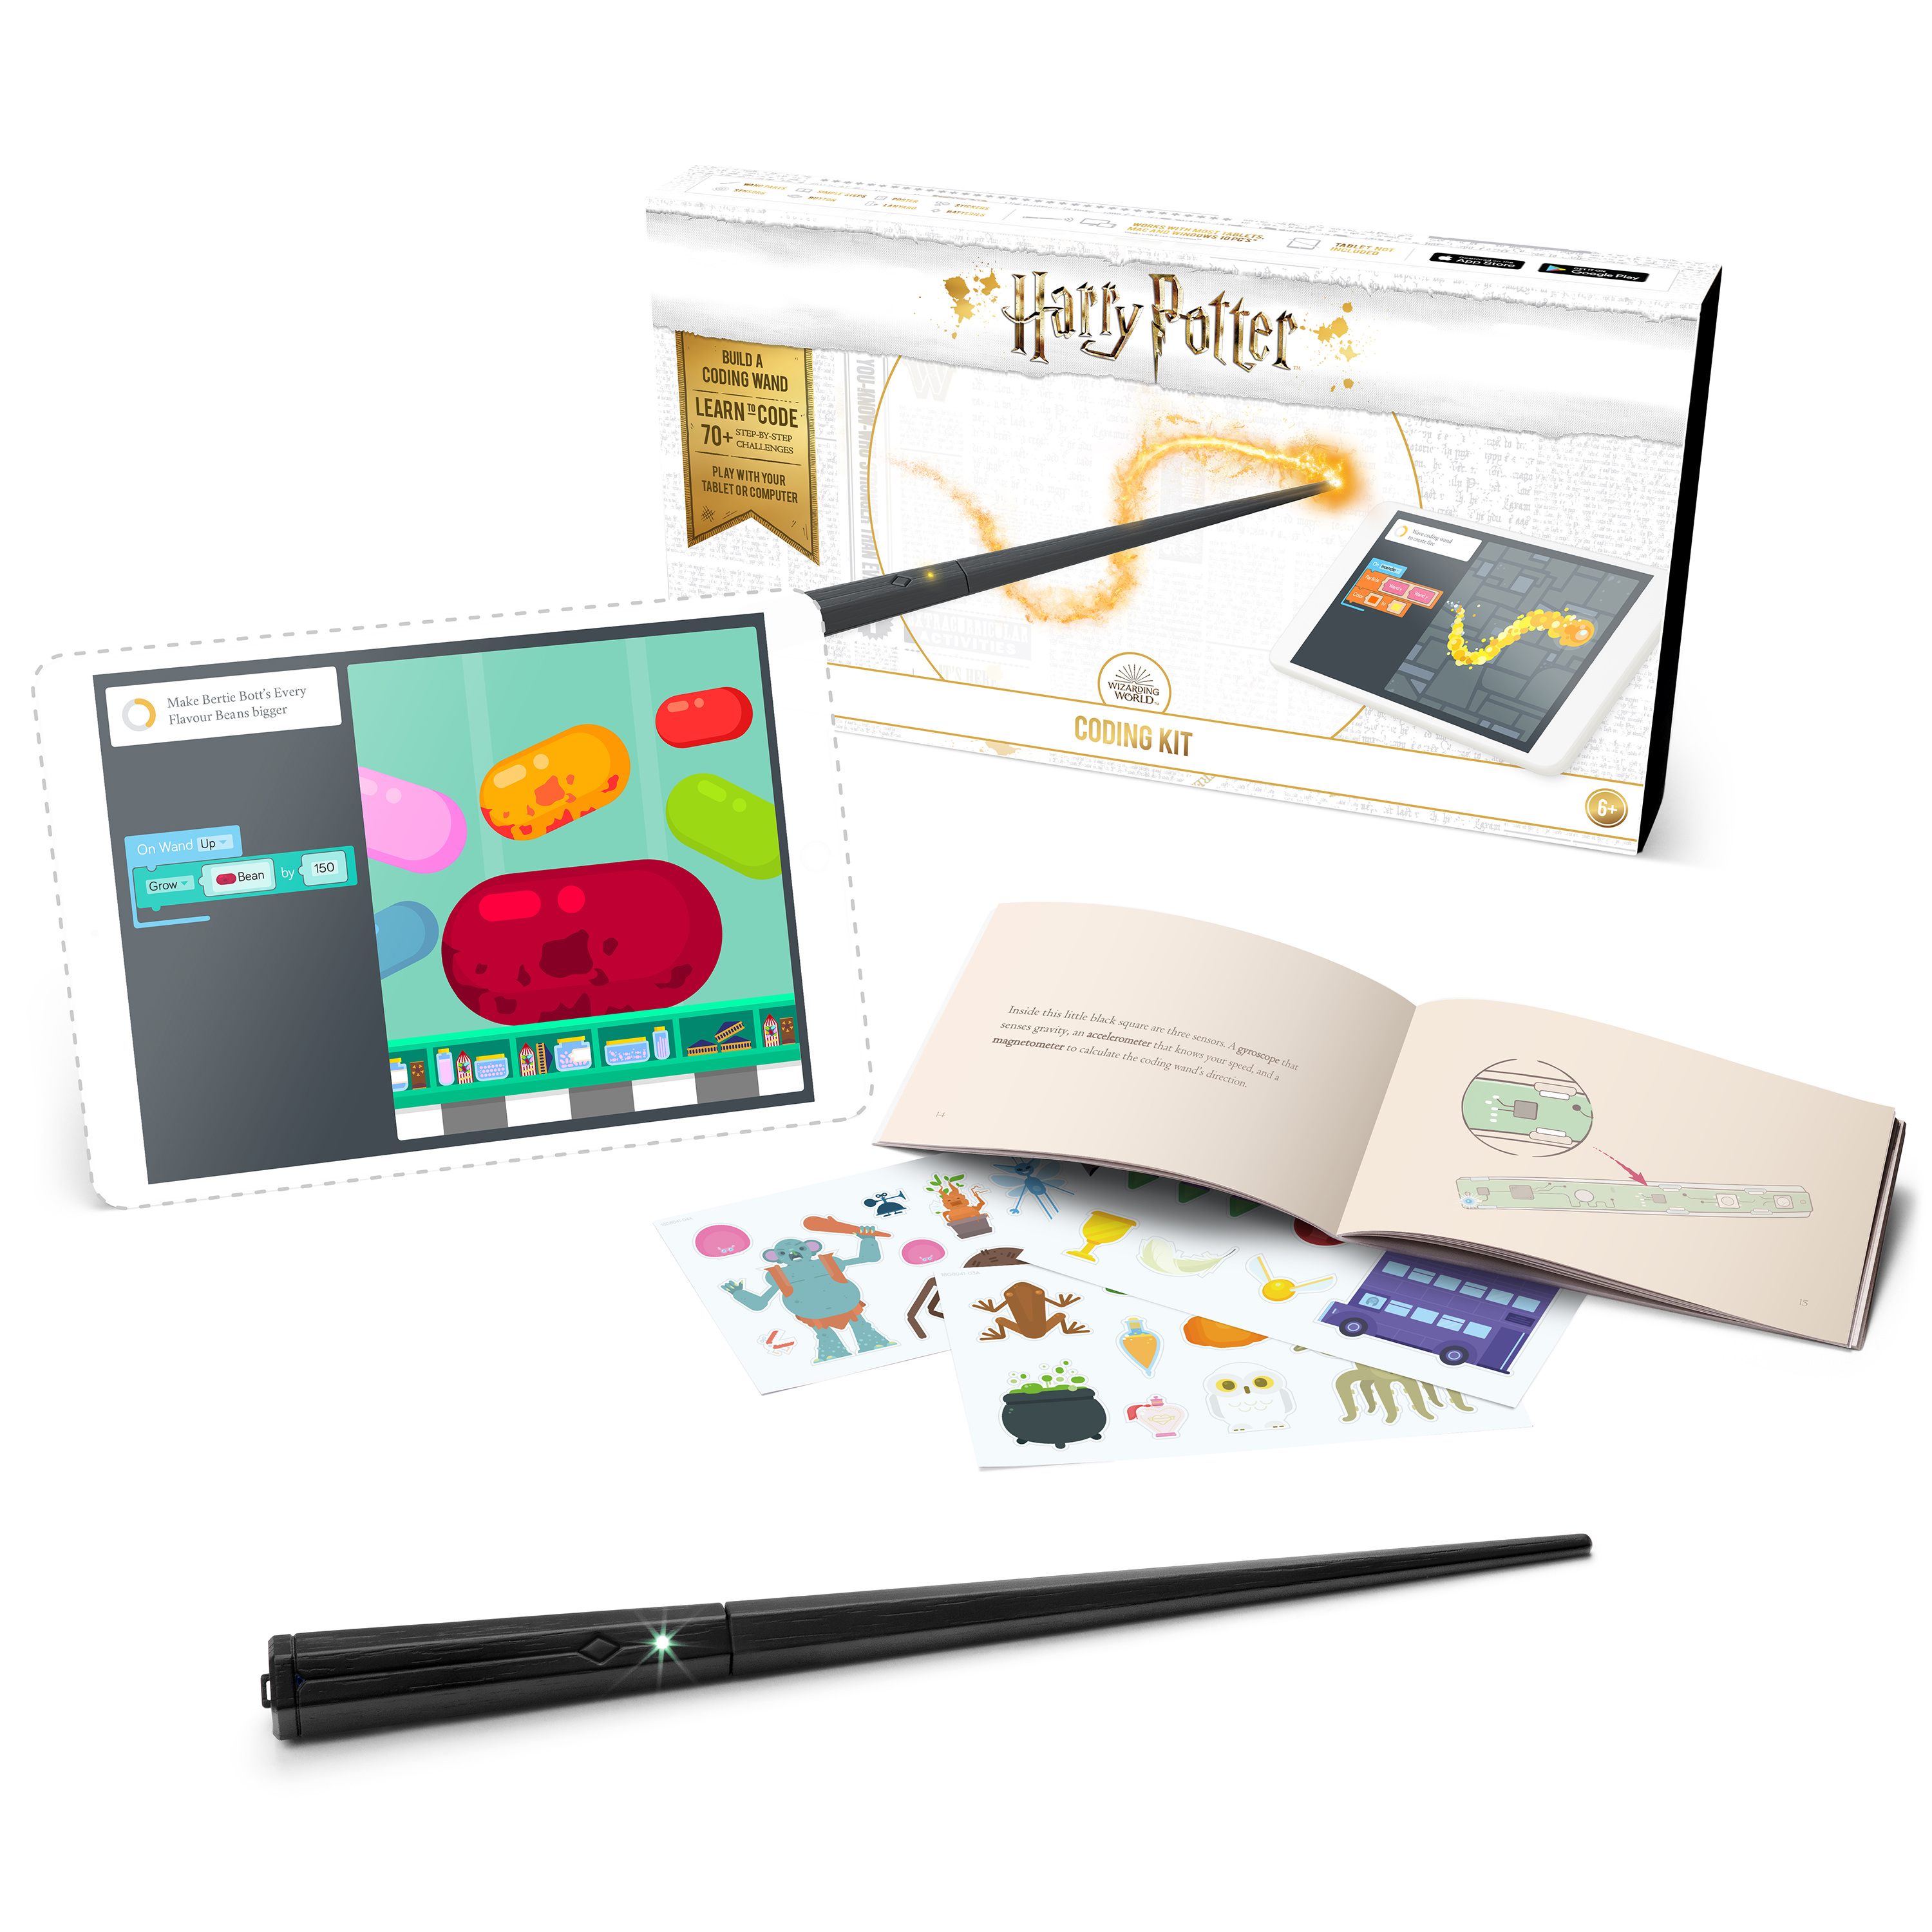 Harry Potter Kano Coding Kit – Build a wand. Learn to code. Make magic